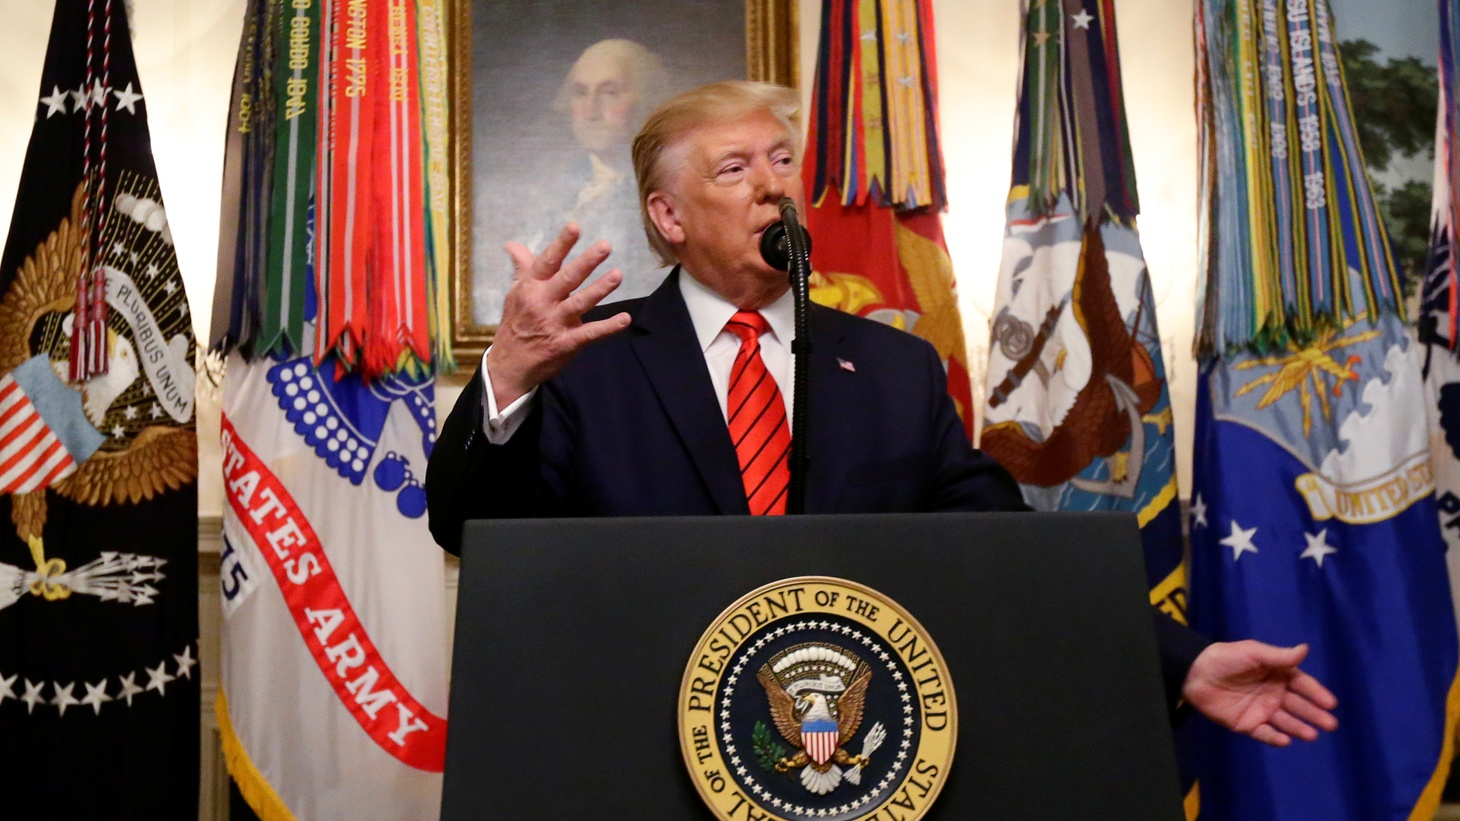 U.S. President Donald Trump makes a statement at the White House following reports that U.S. forces attacked Islamic State leader Abu Bakr al-Baghdadi in northern Syria, in Washington, U.S., October 27, 2019.